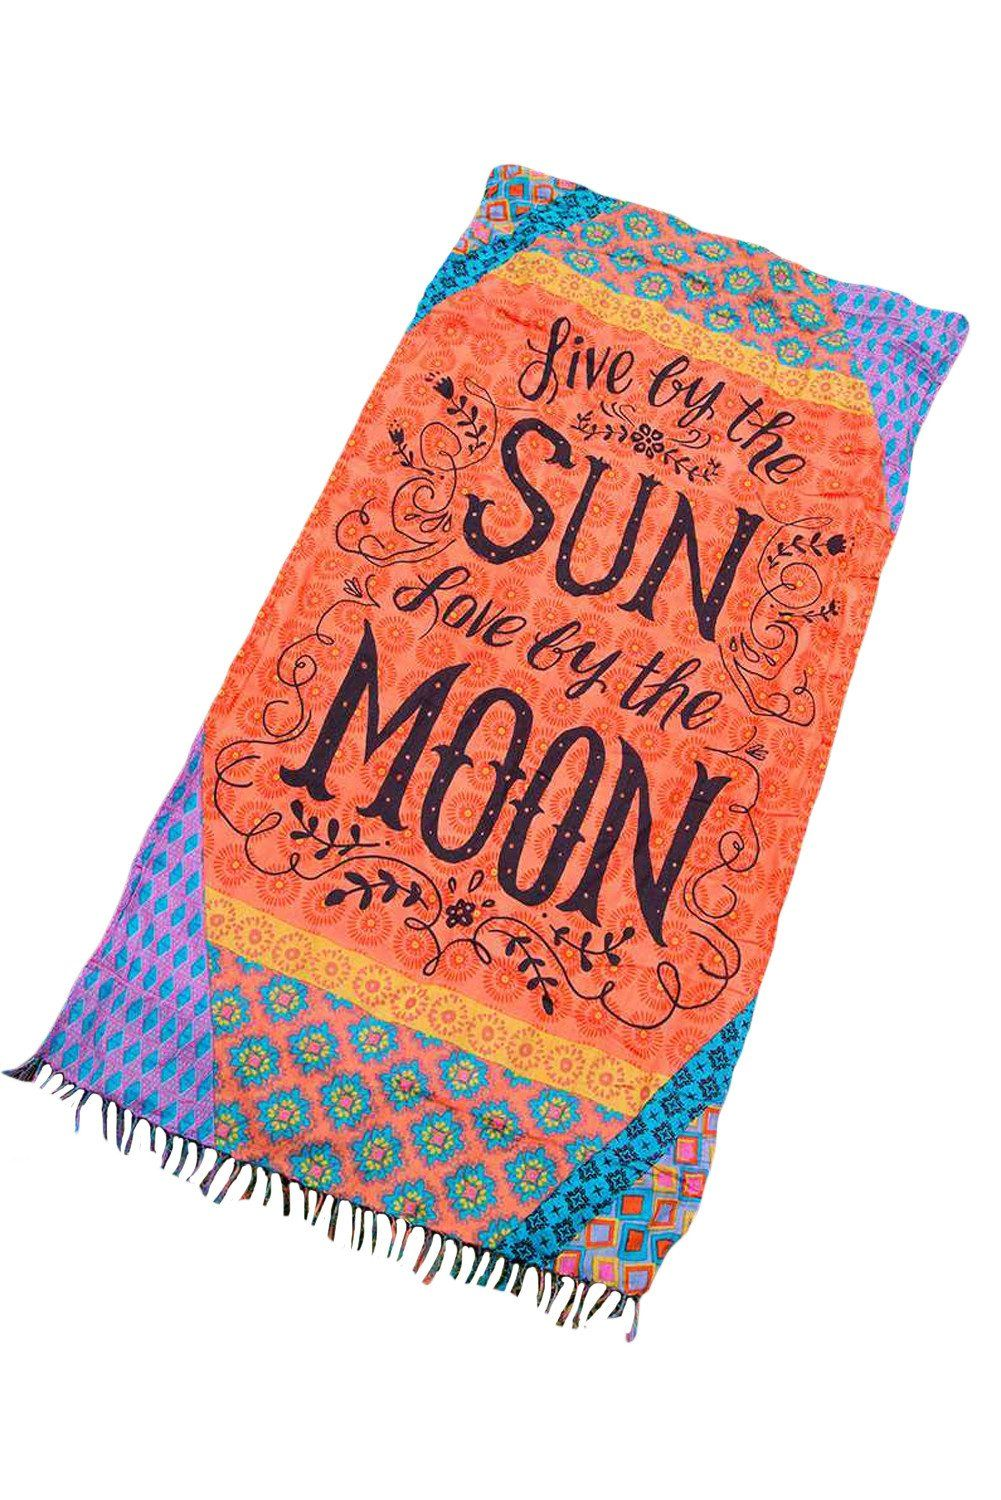 Live By The Sun Love By The Moon Beach Towel Happy Pretty Photooftheday Followme Love Bootylicio Beach Towel Blanket Beach Towel Moon Beach